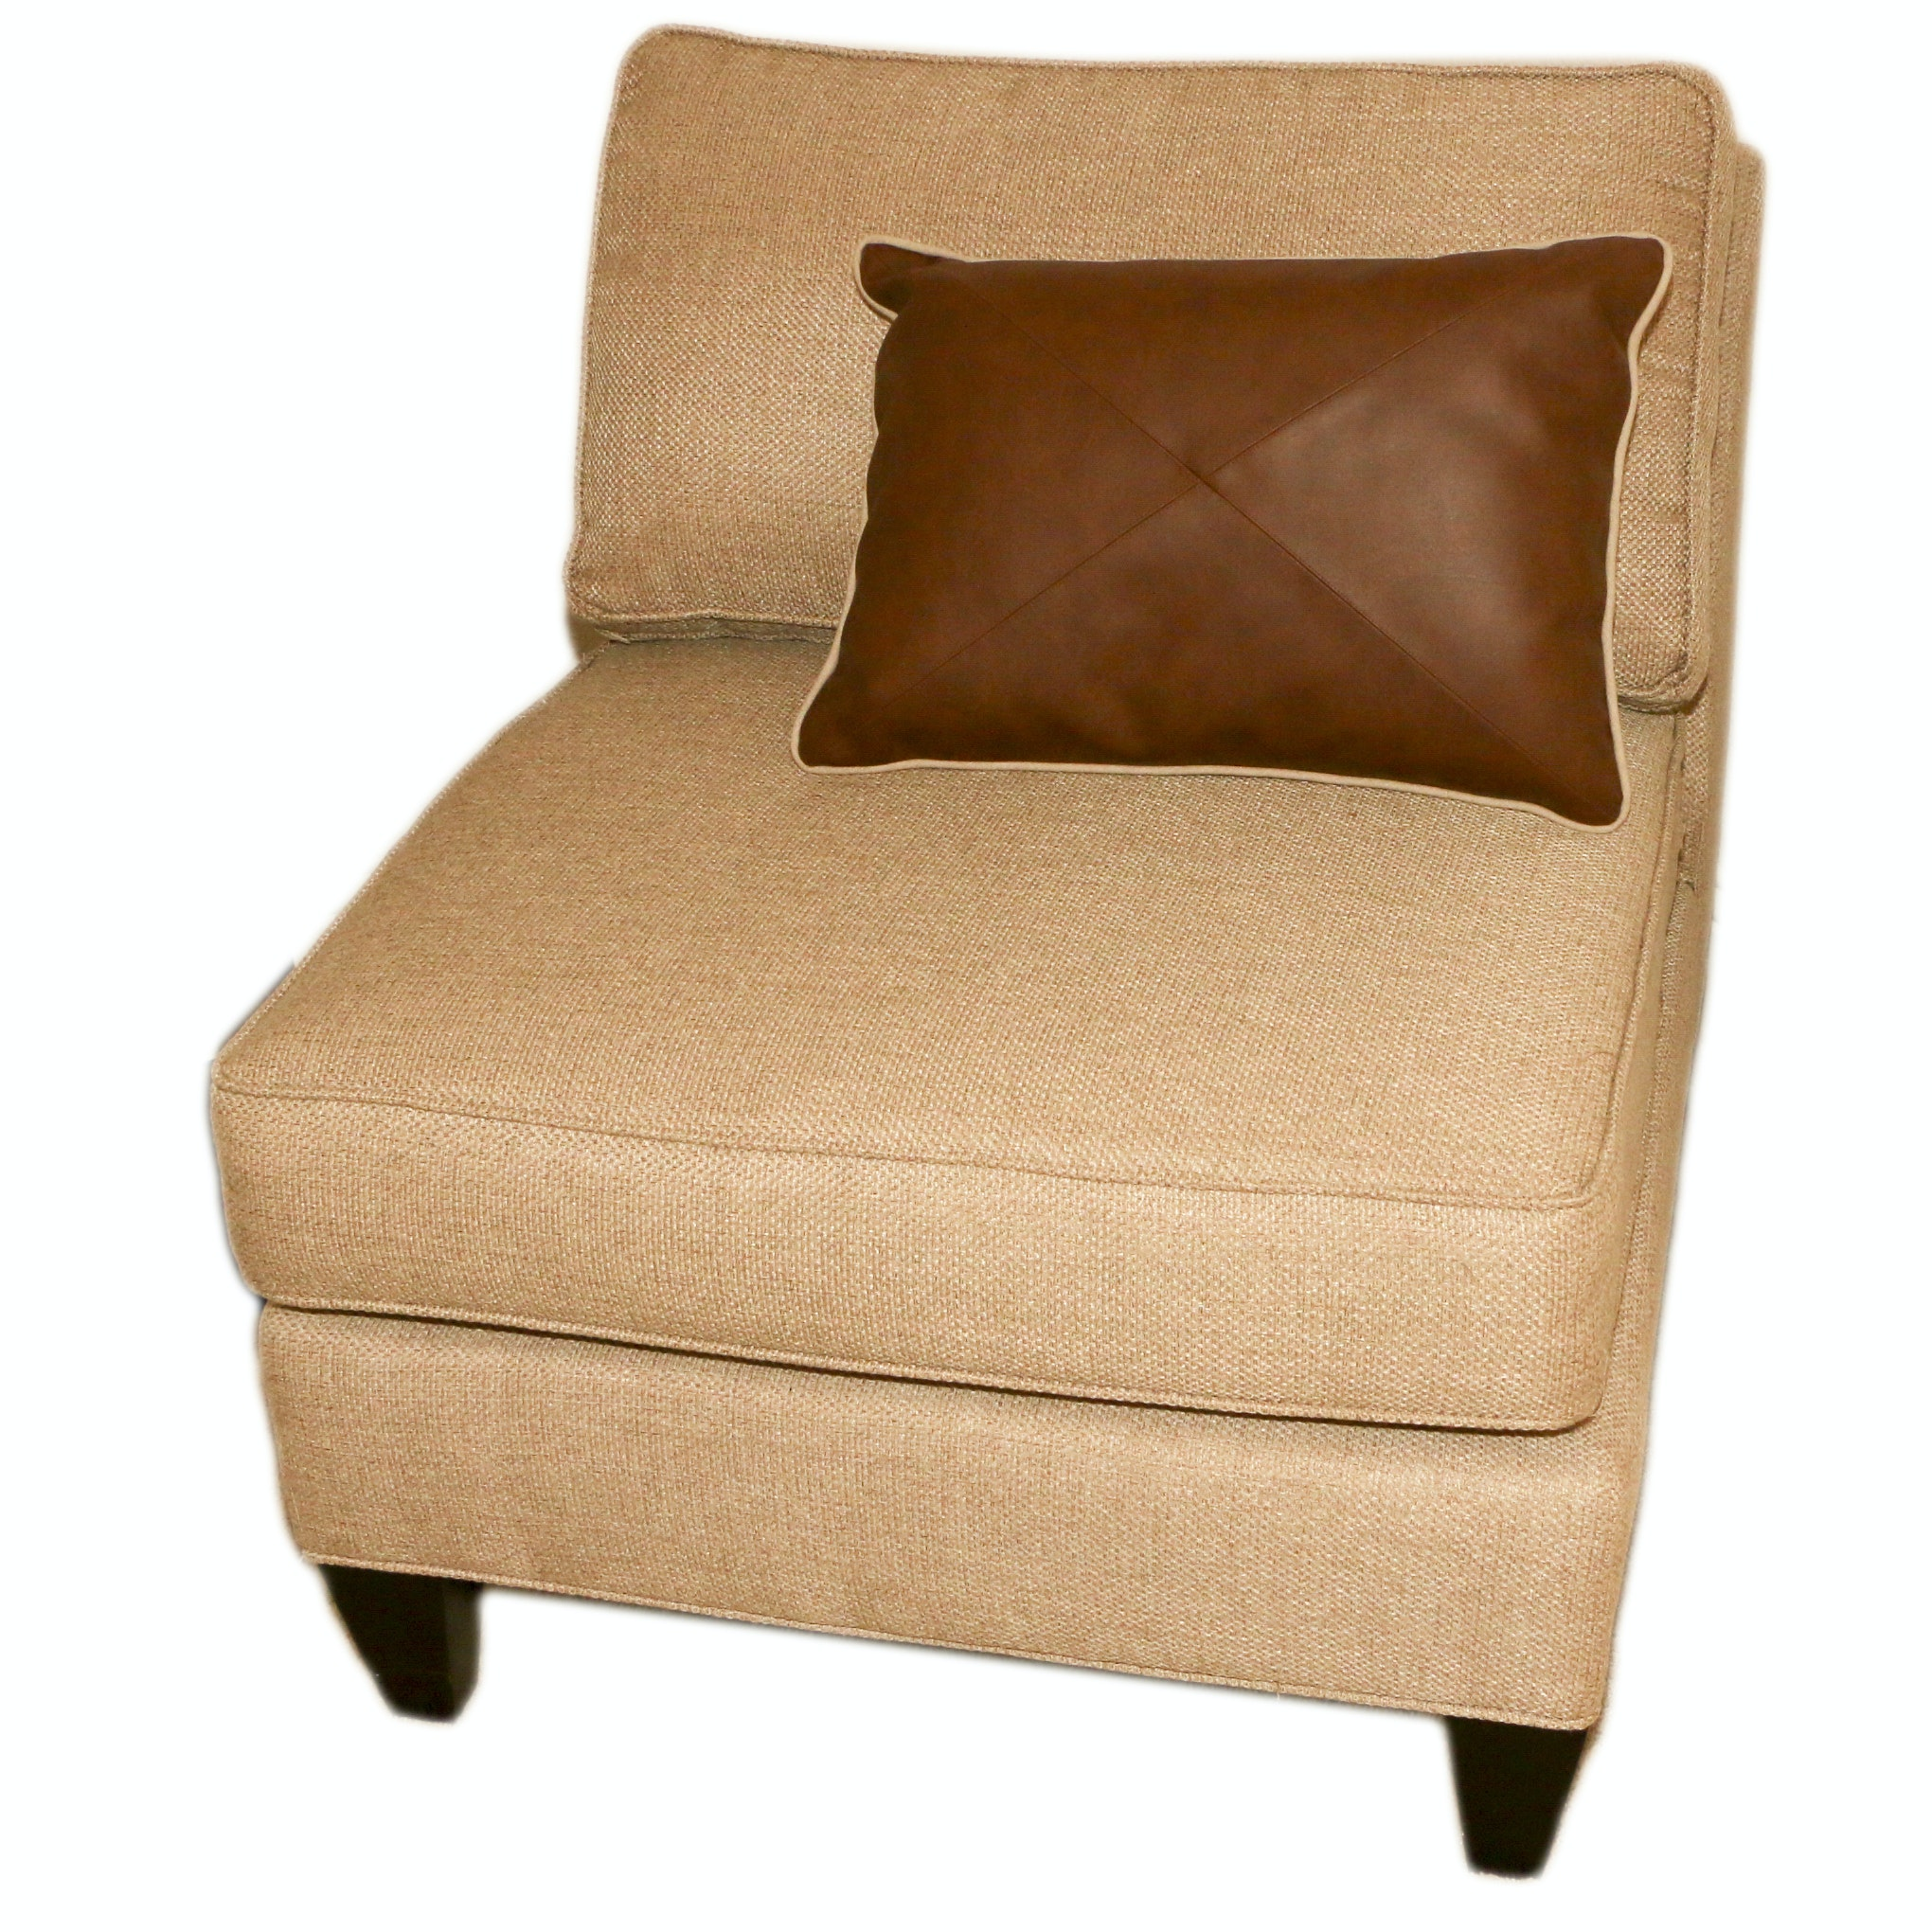 Contemporary Upholstered Accent Chair by Rowe Furniture